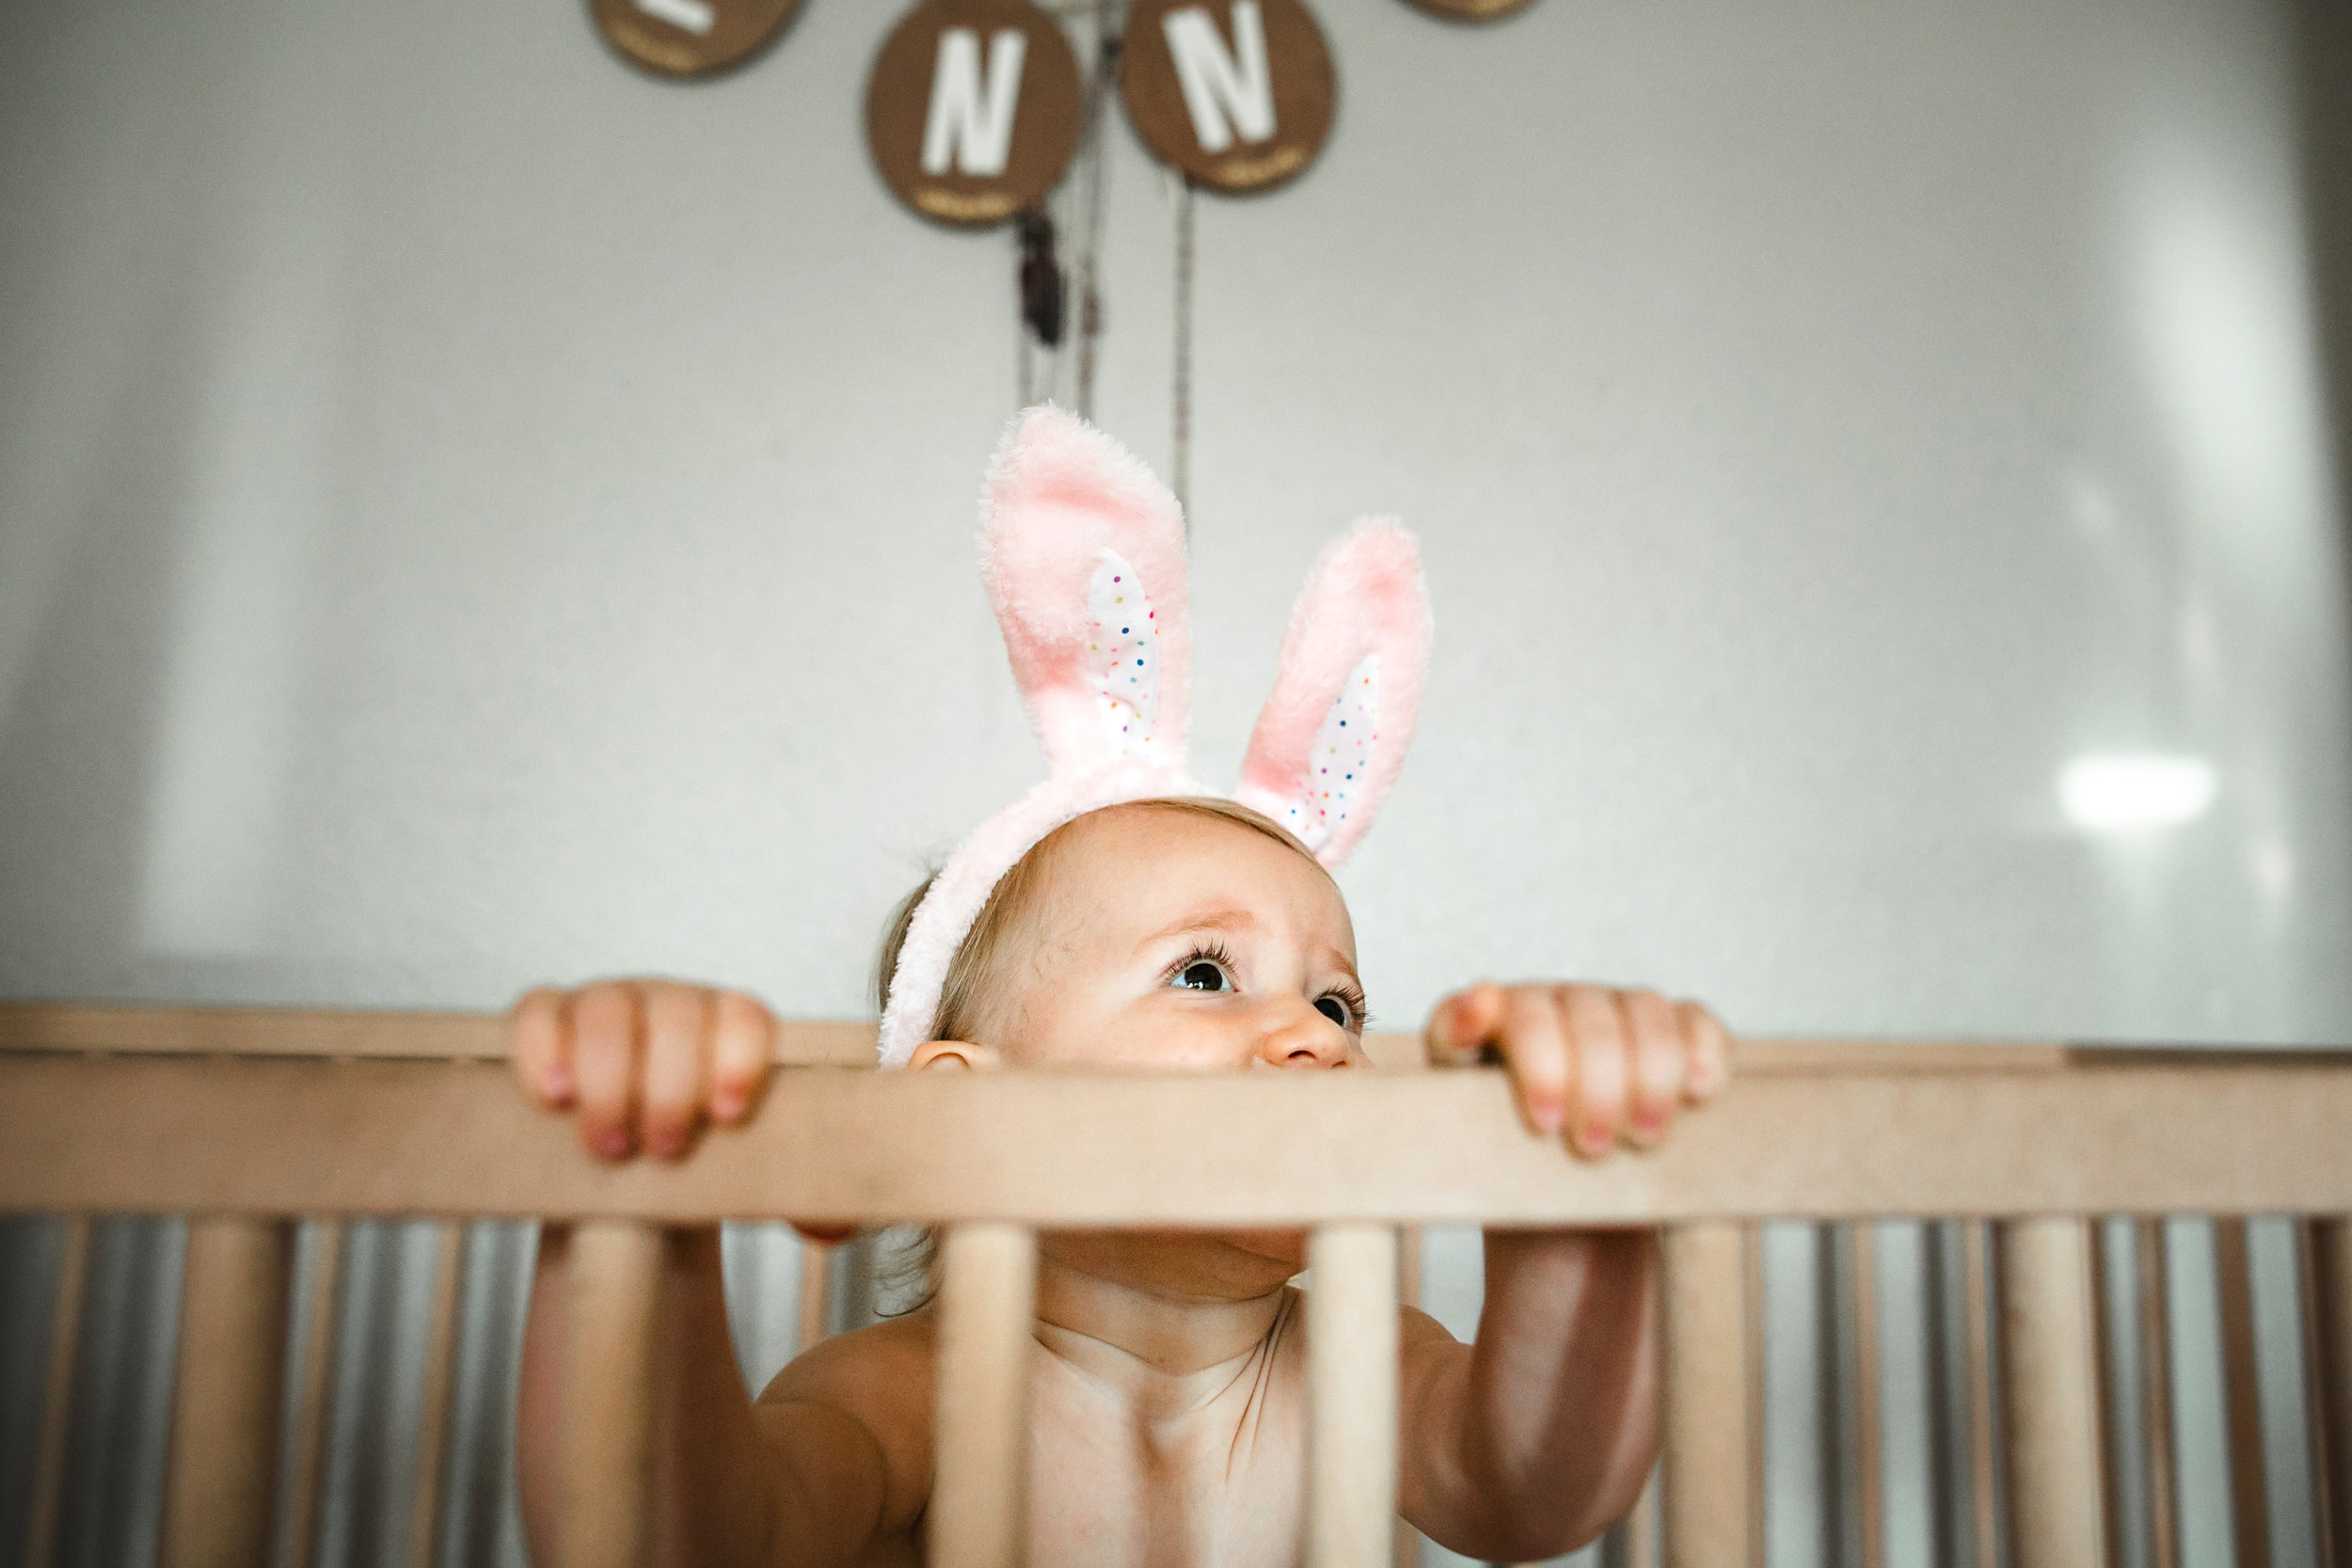 baby plays in crib wearing diaper and bunny ears 3-(ZF-0126-04493-1-010).jpg